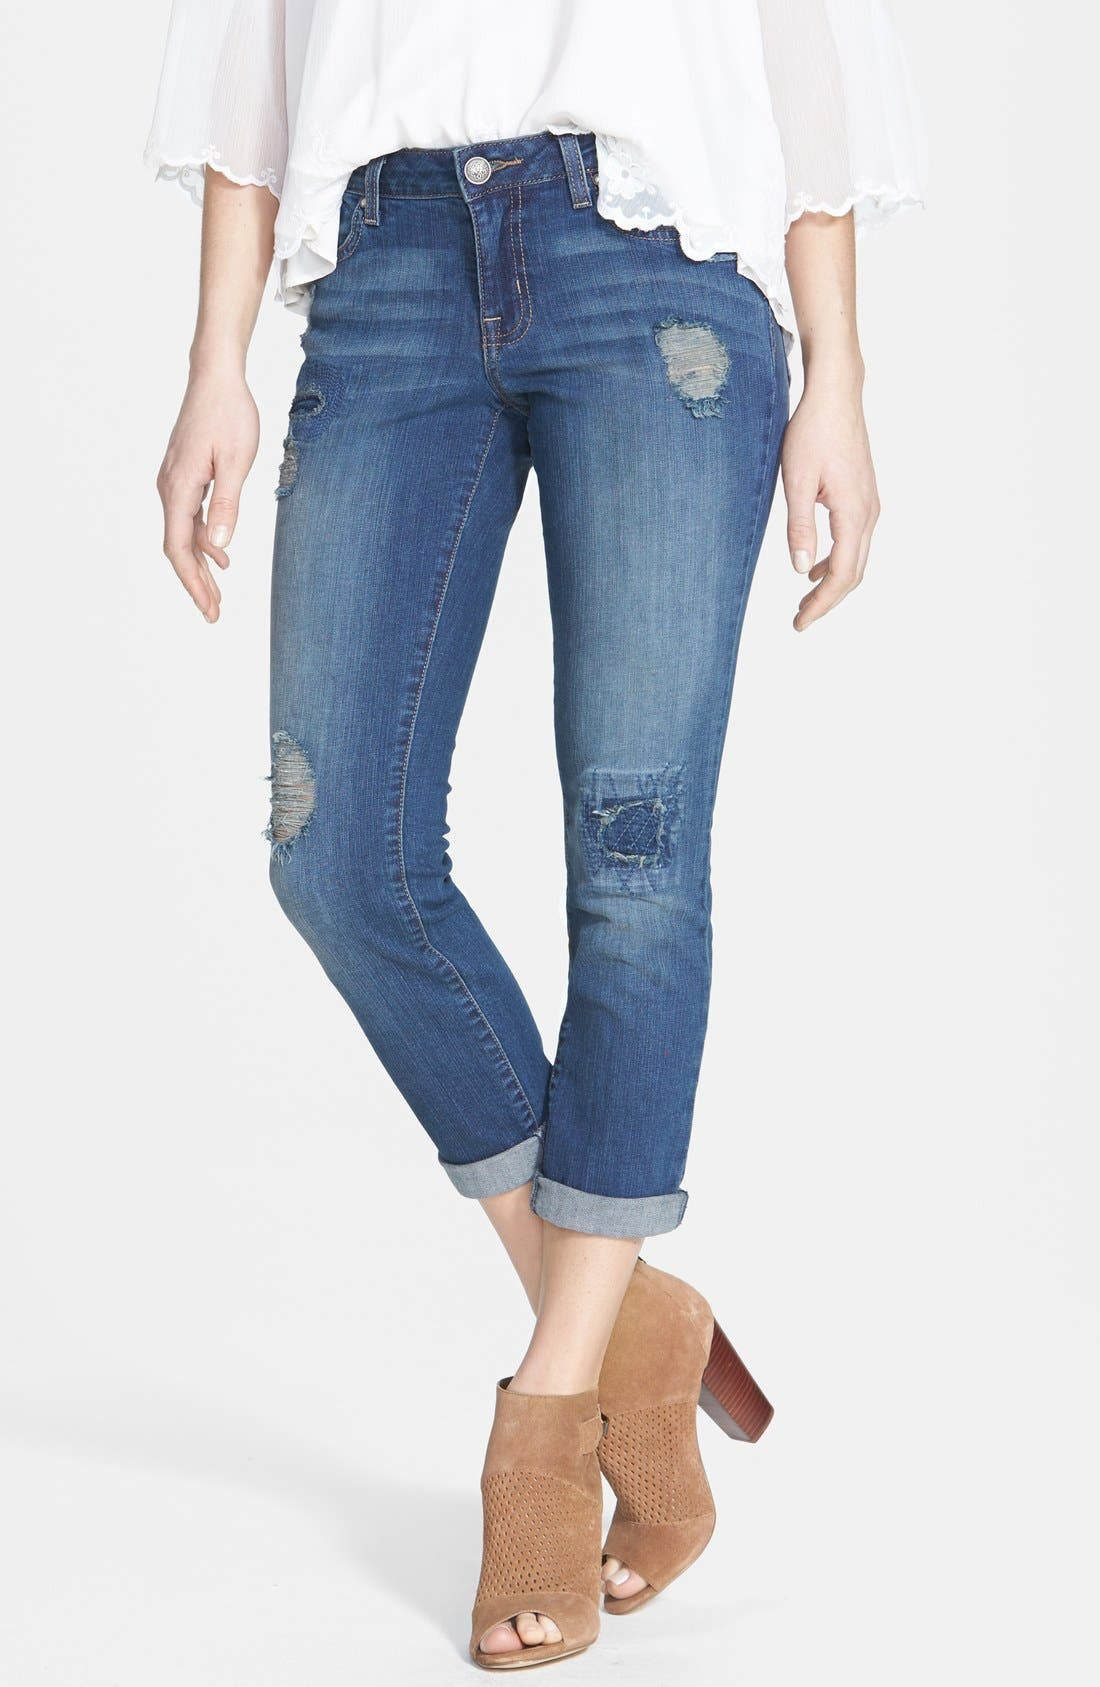 Main Image - Jessica Simpson 'Forever' Distressed Crop Skinny Jeans (Bluesine/Spain)